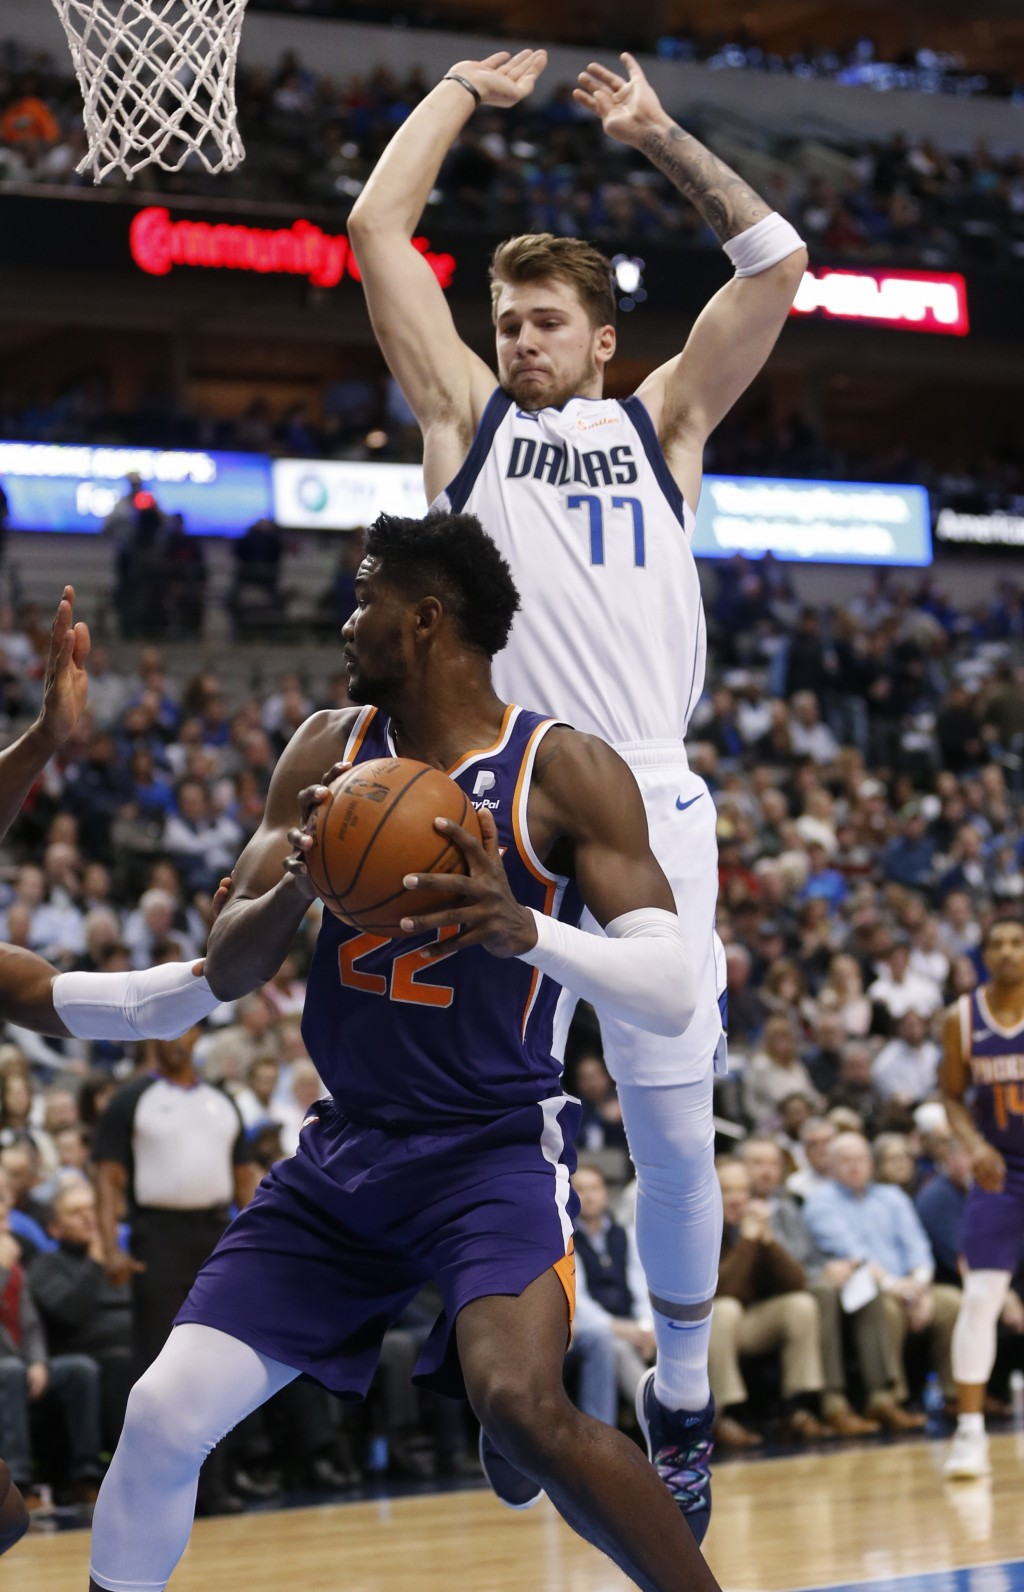 Phoenix Suns center Deandre Ayton (22) looks to shoot as Dallas Mavericks forward Luka Doncic (77) guards during the first half of an NBA basketball g...